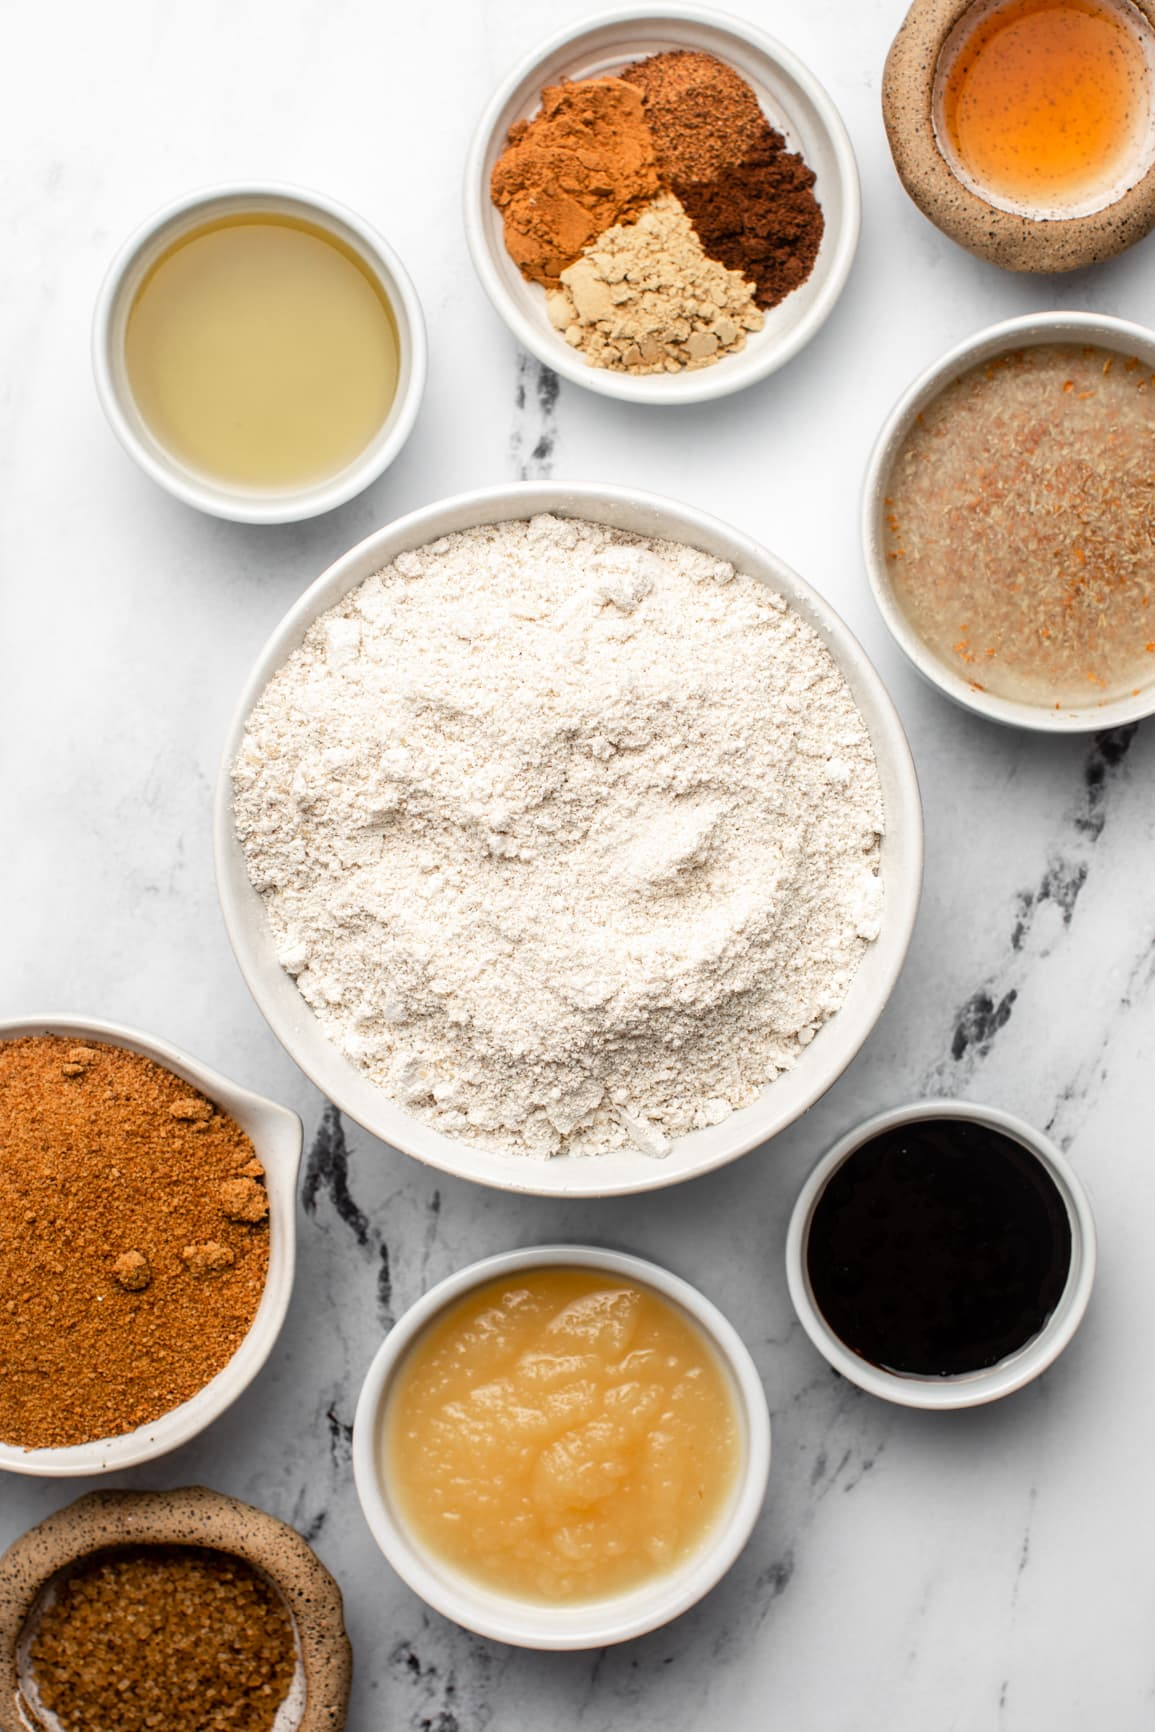 ingredients for gingerbread loaf in small white bowls on marble countertop